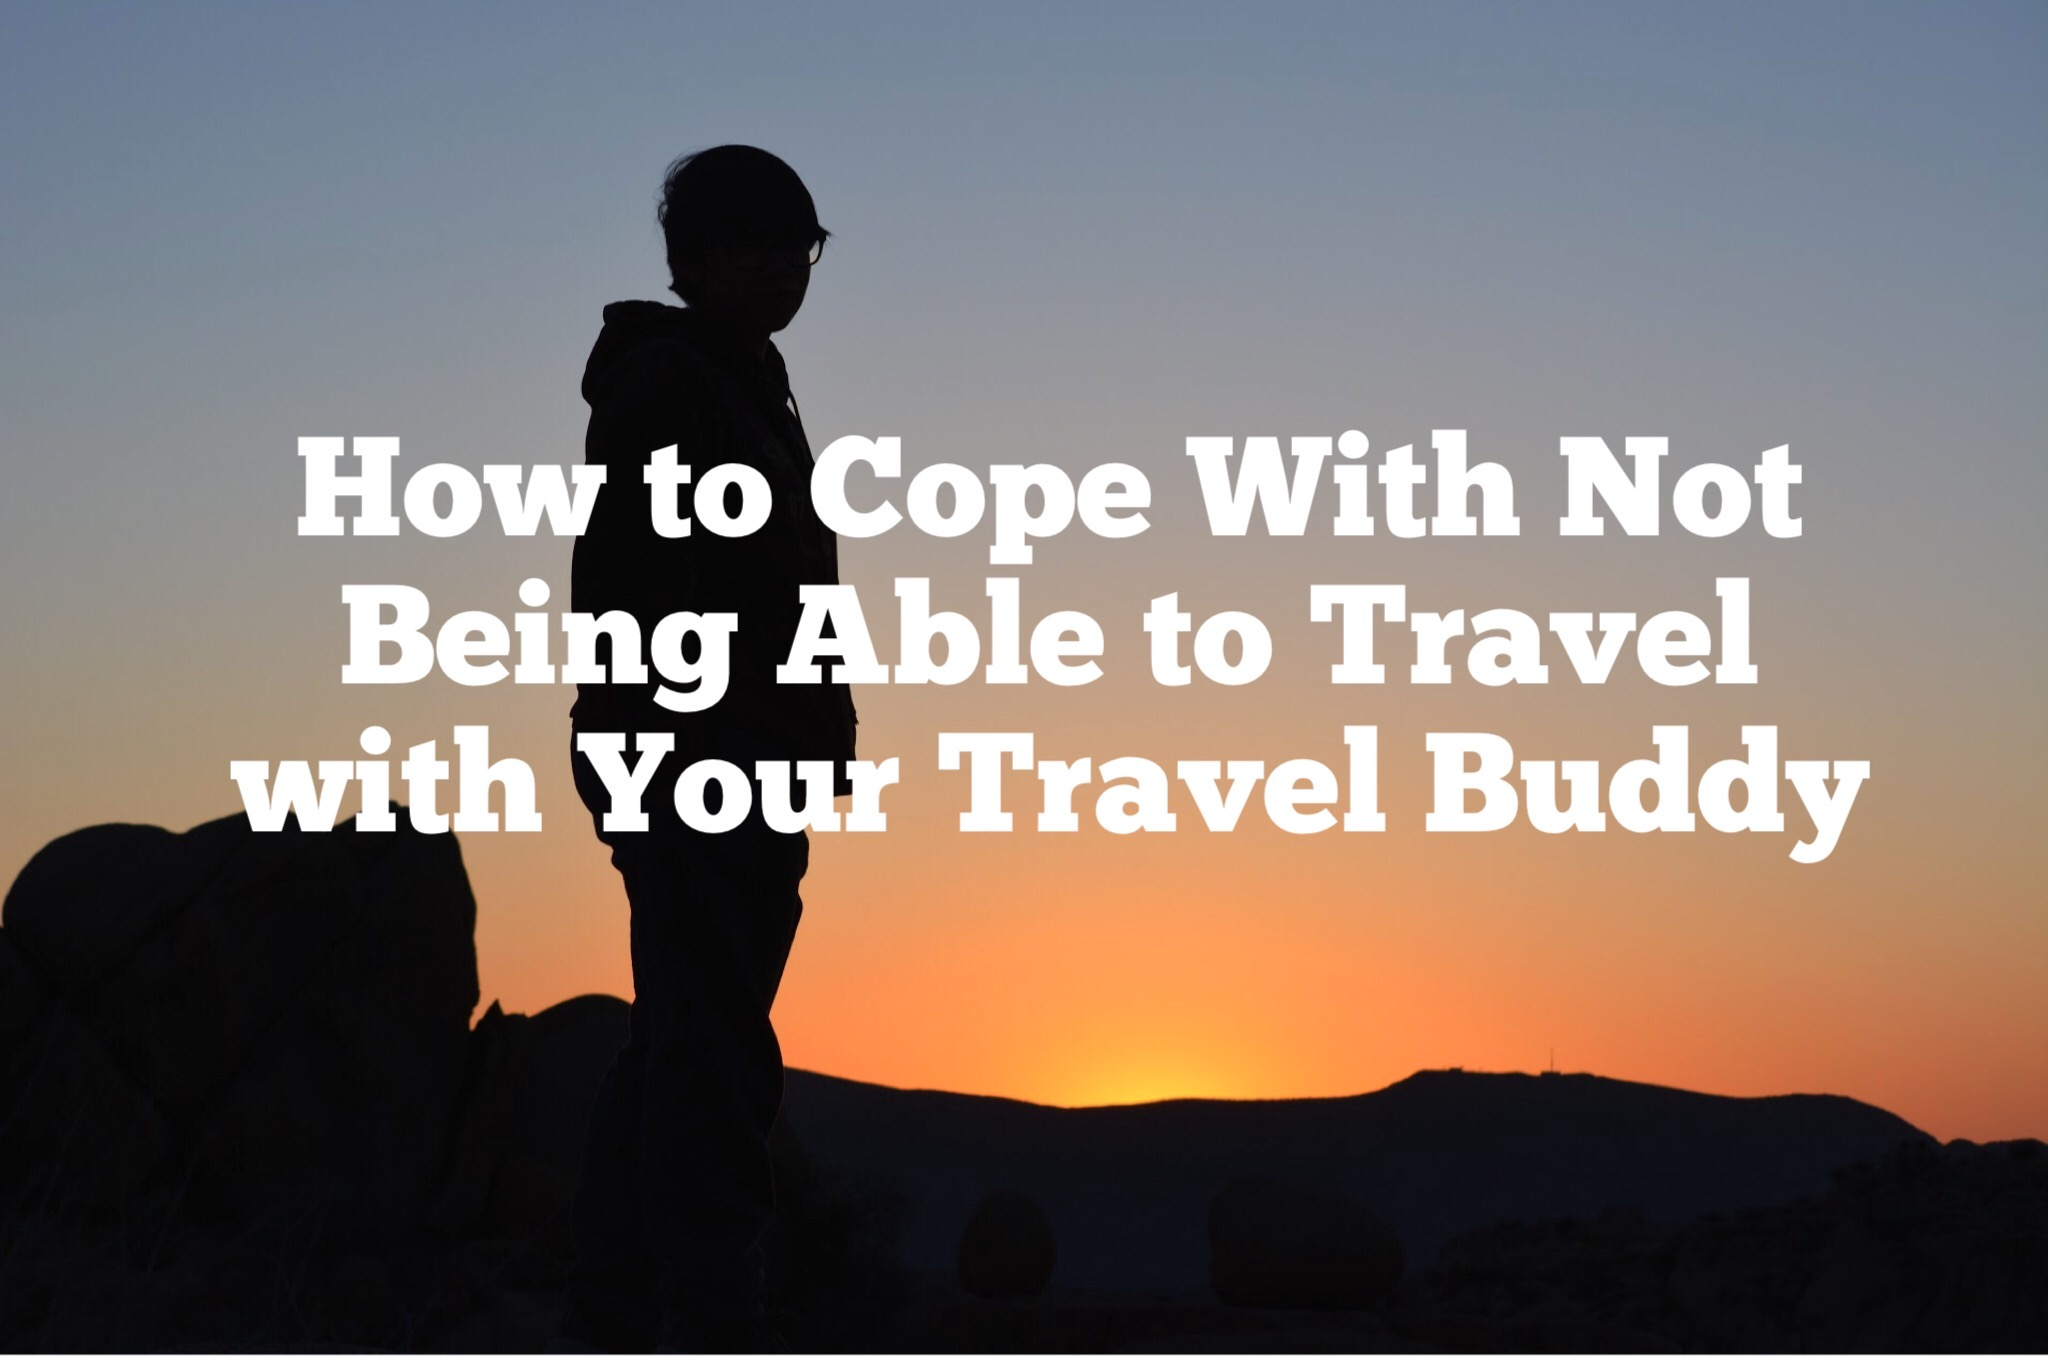 How to Cope with Not Being Able to Travel With Your Travel Buddy